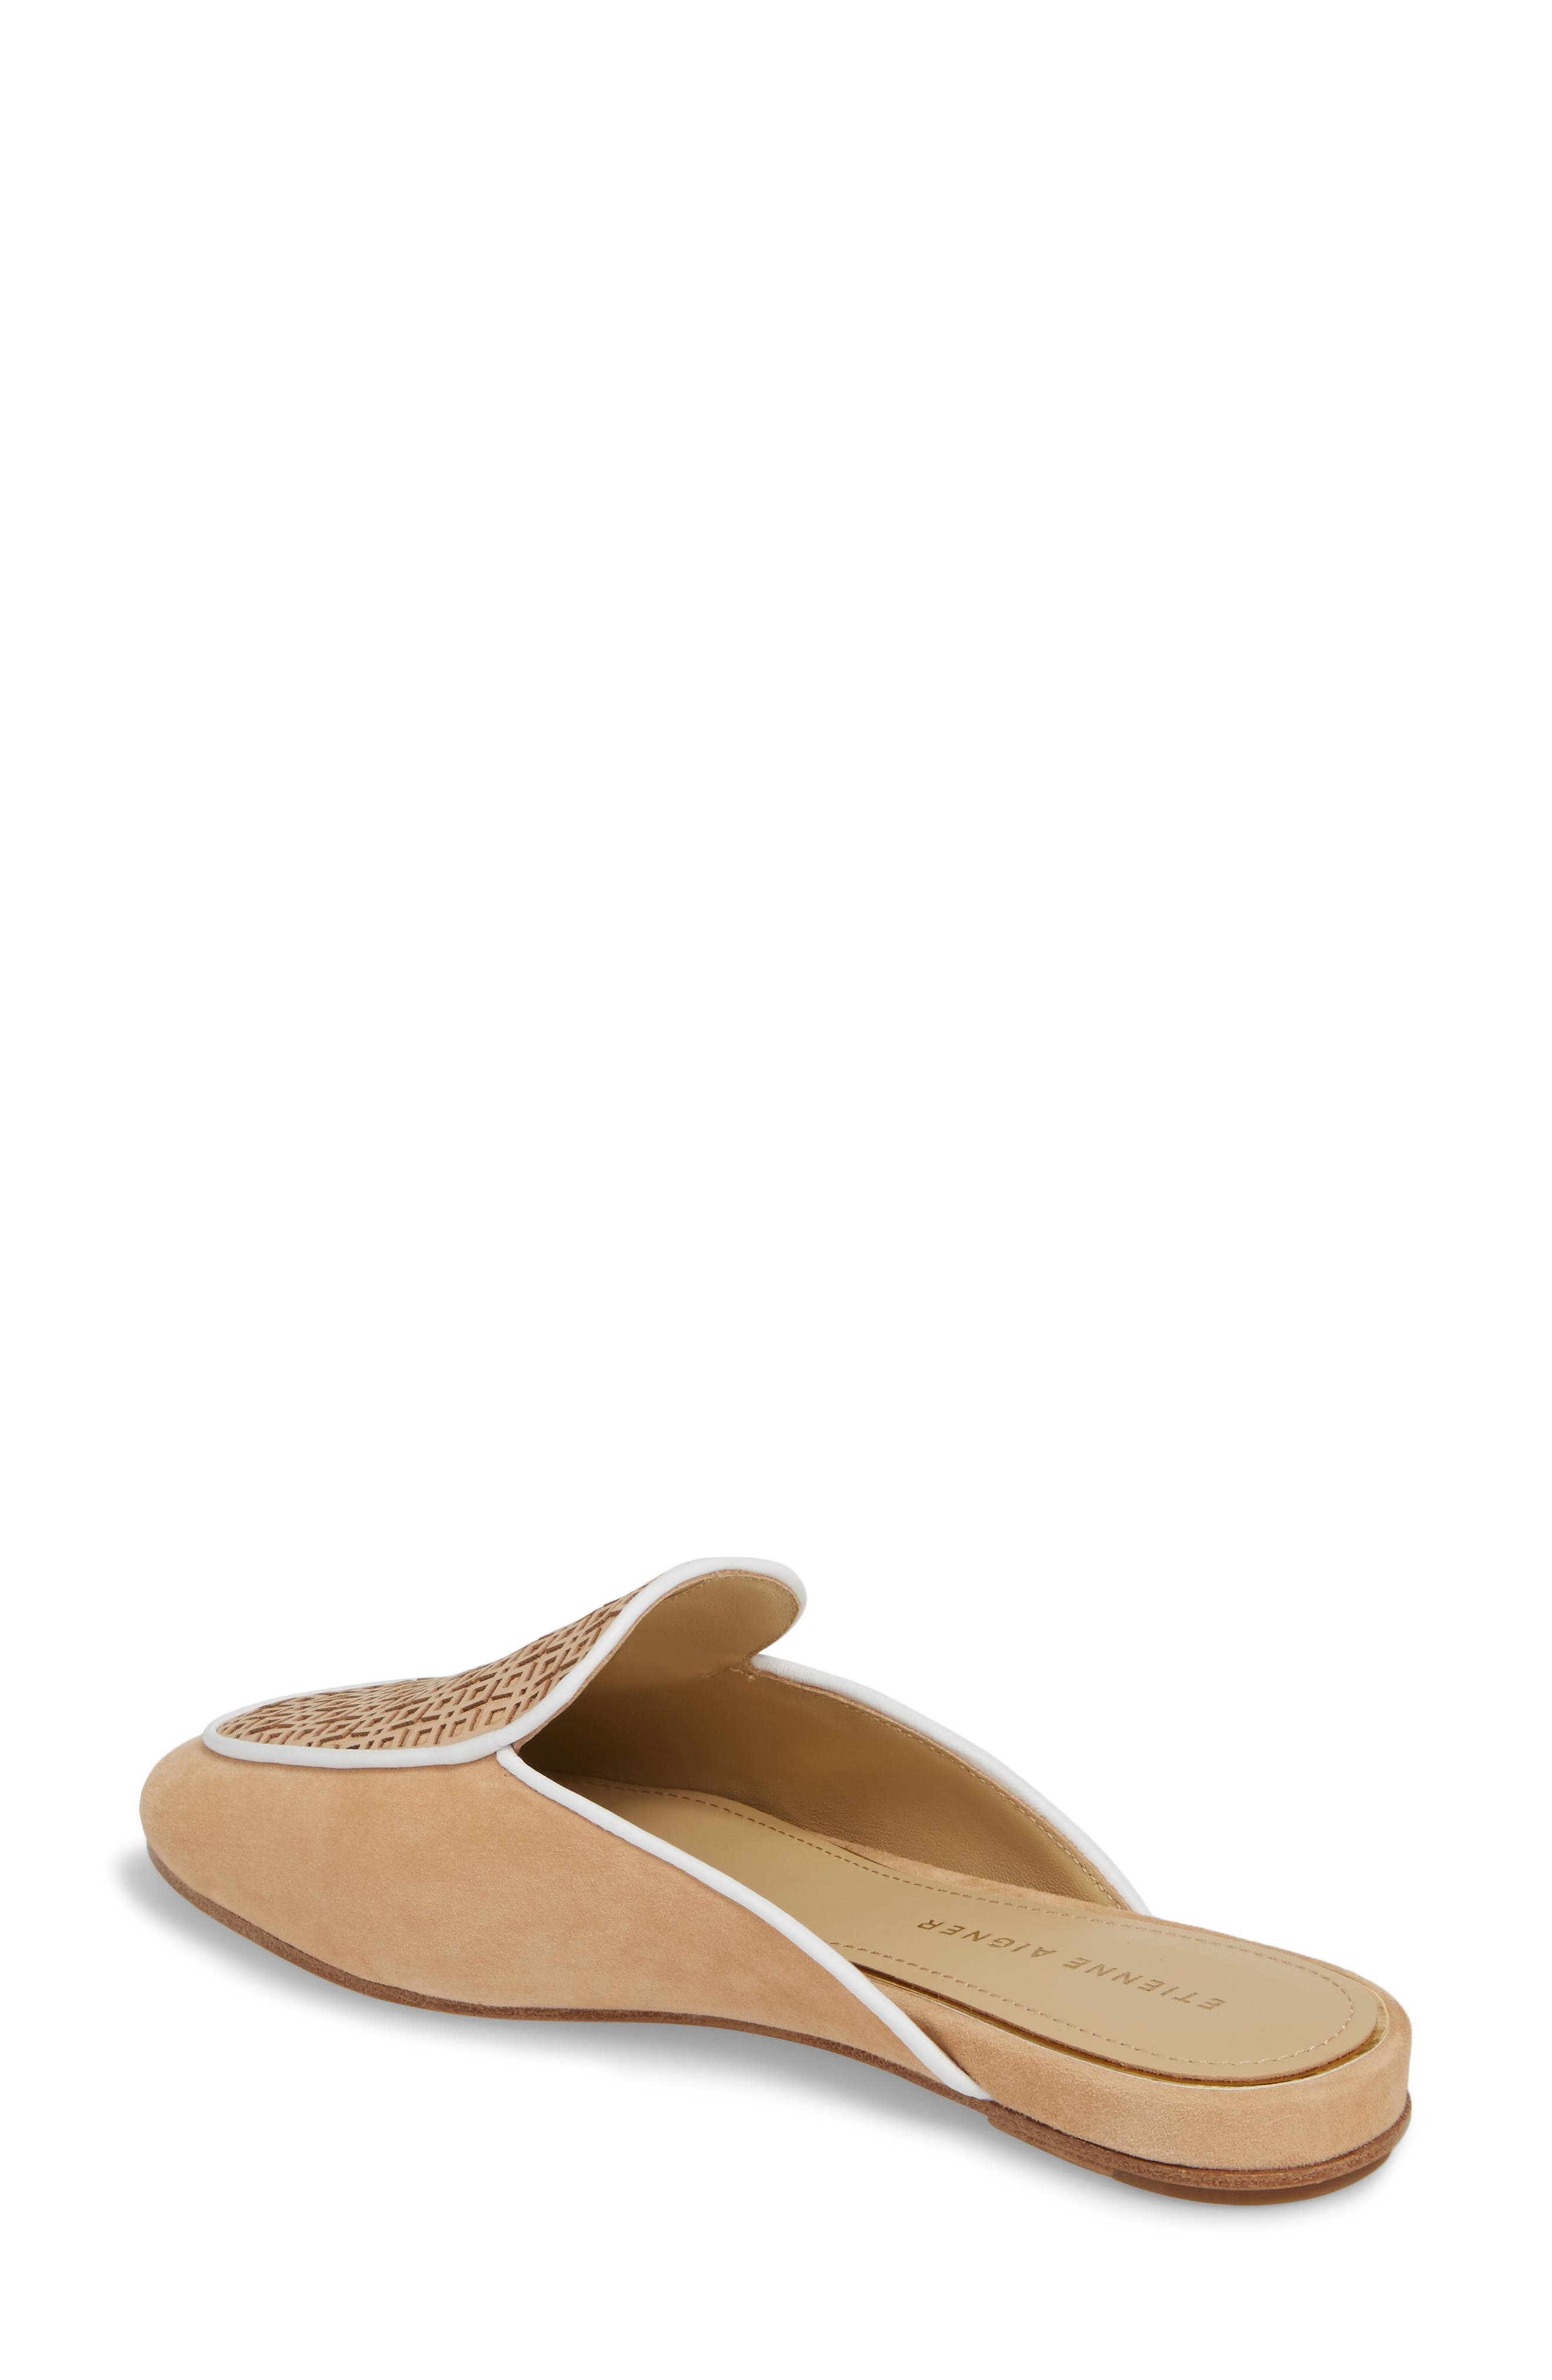 Caymen Mule,                             Alternate thumbnail 2, color,                             NATURAL/ FAWN/ WHITE